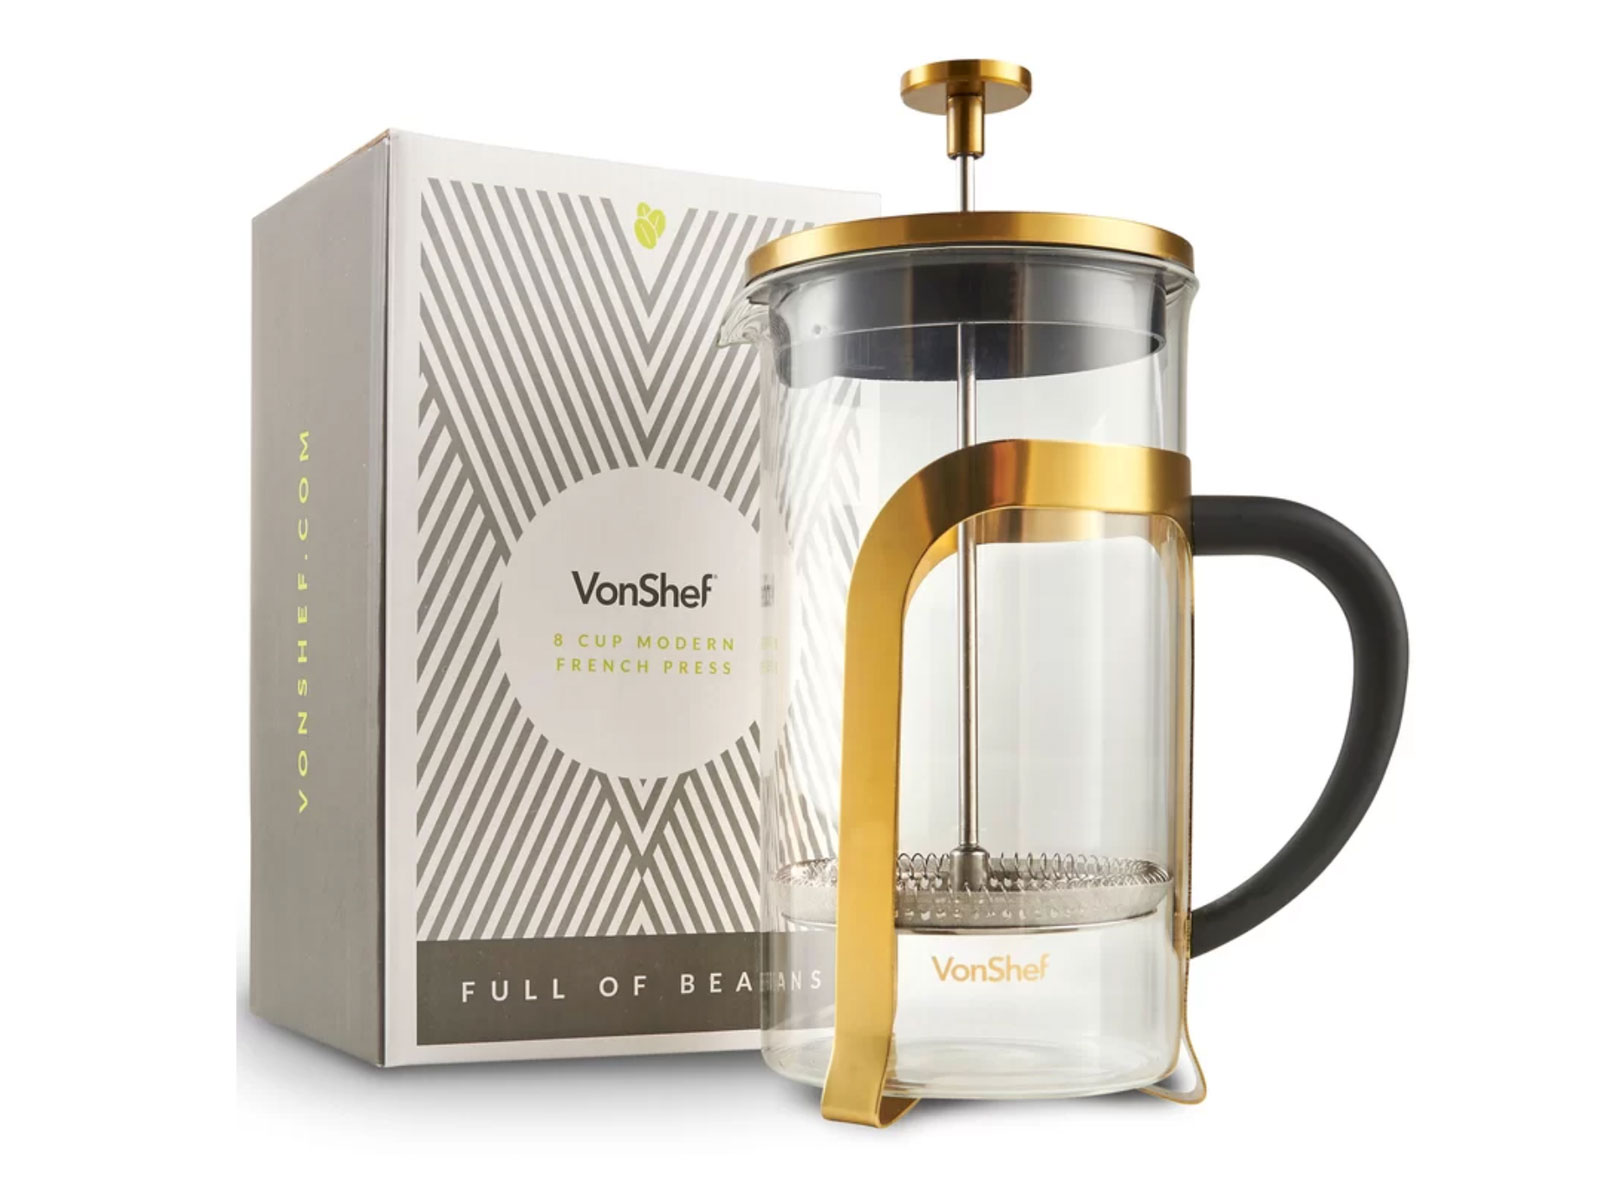 8-Cup Stainless Steel Heat Resistant French Press